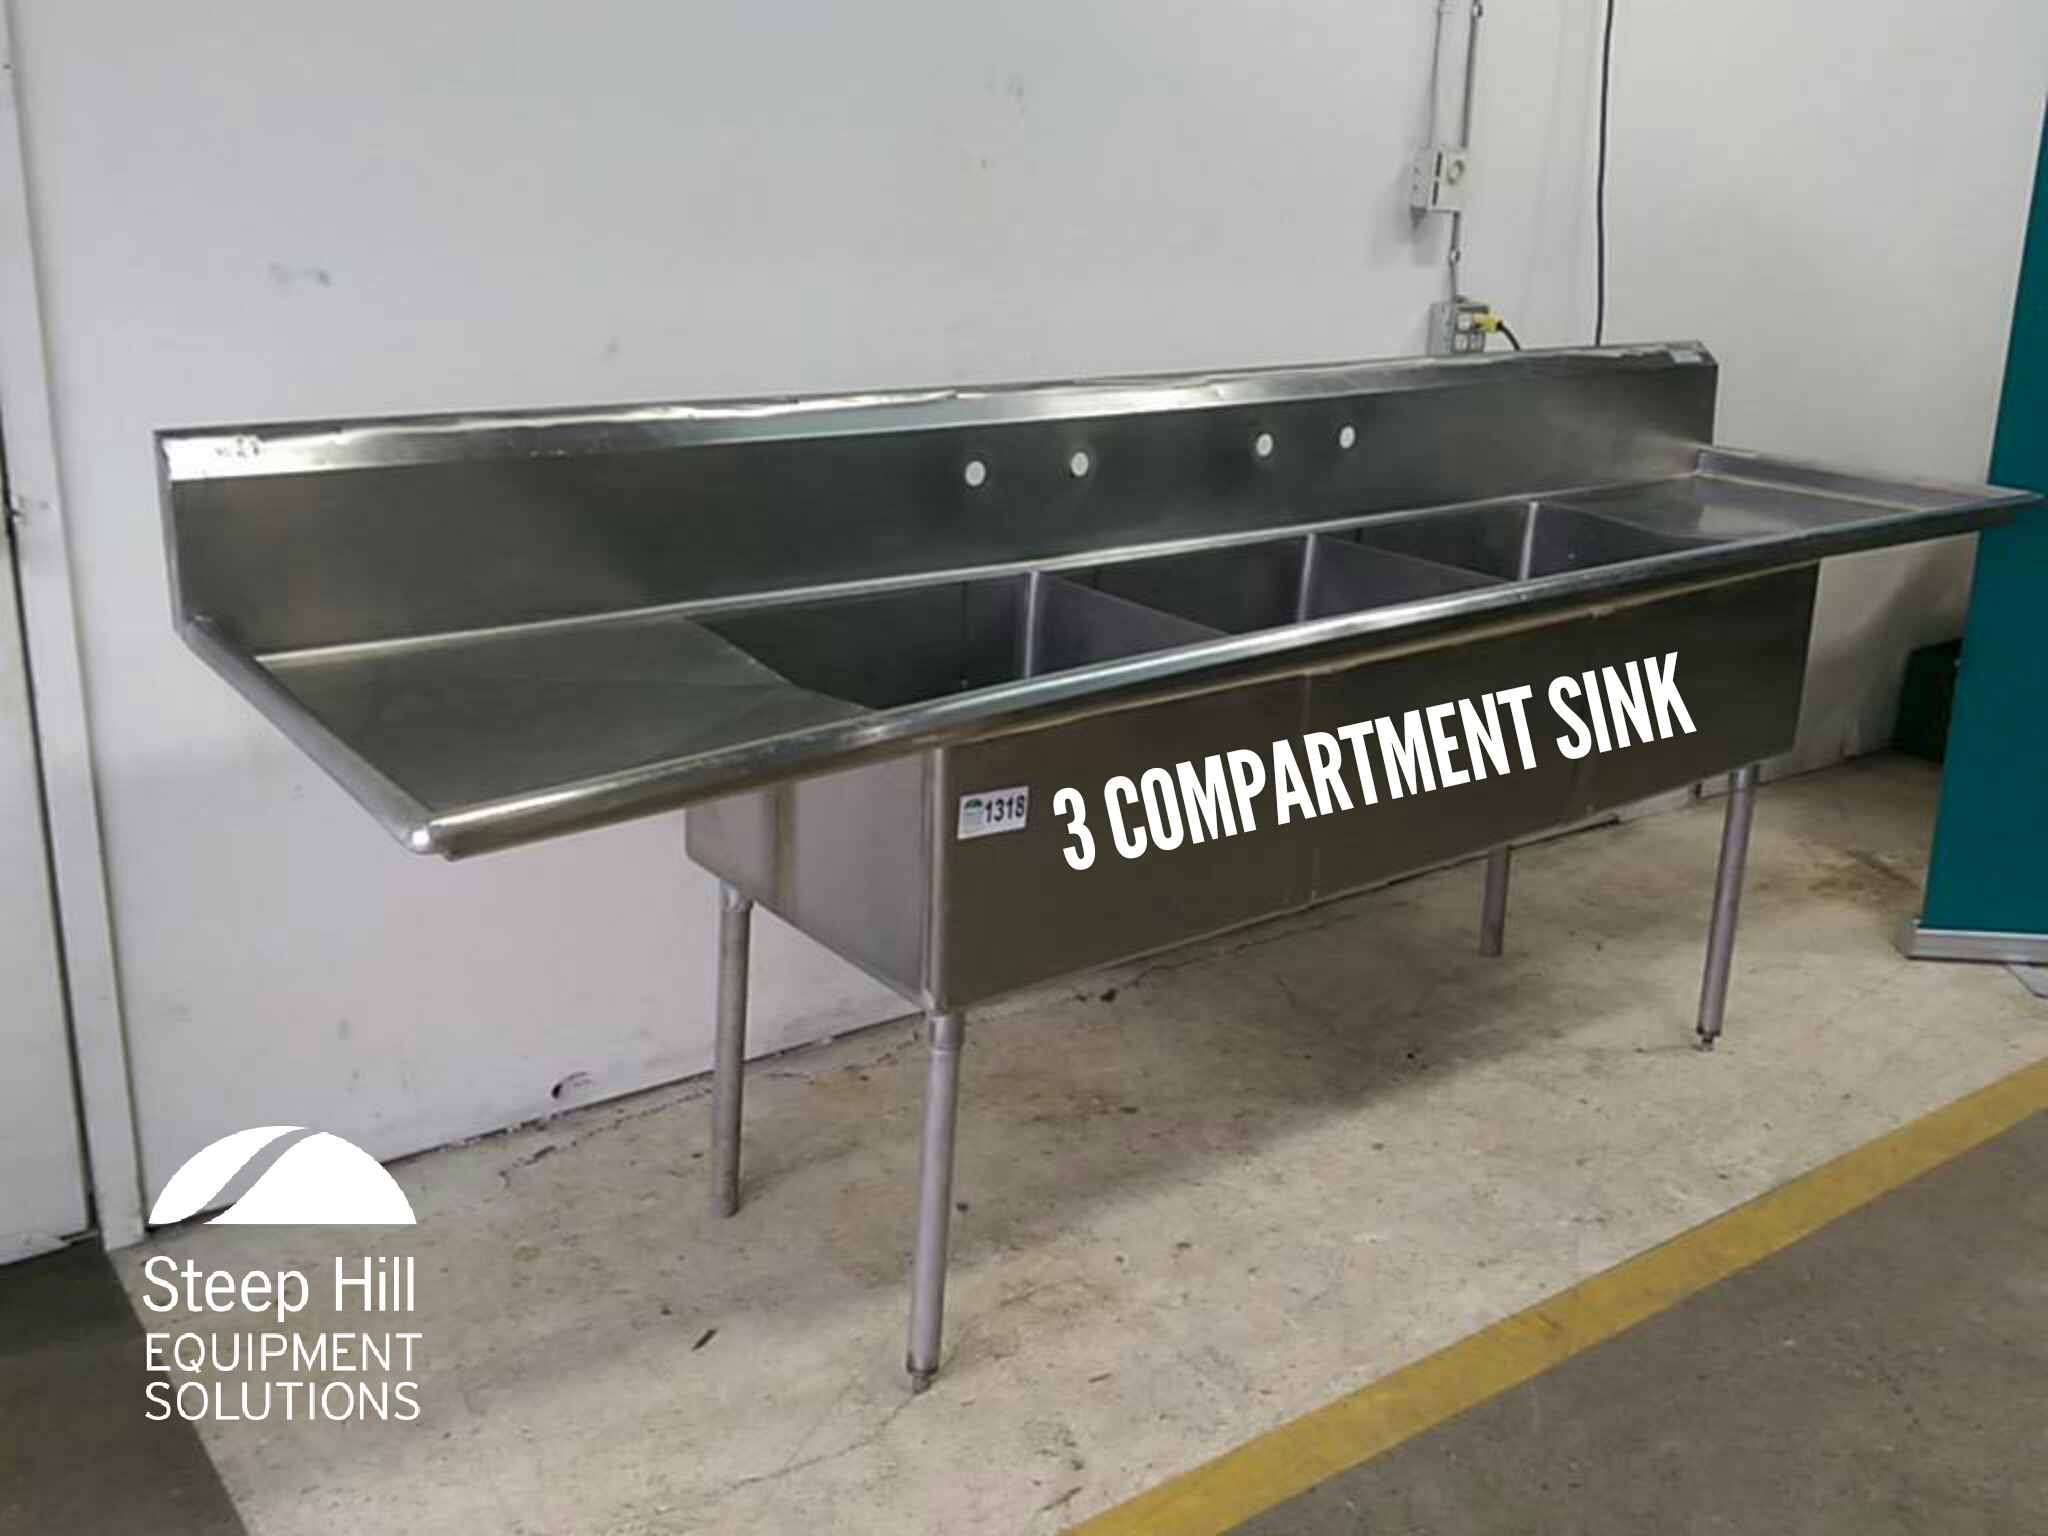 Stainless Steel 3 Compartment Sink